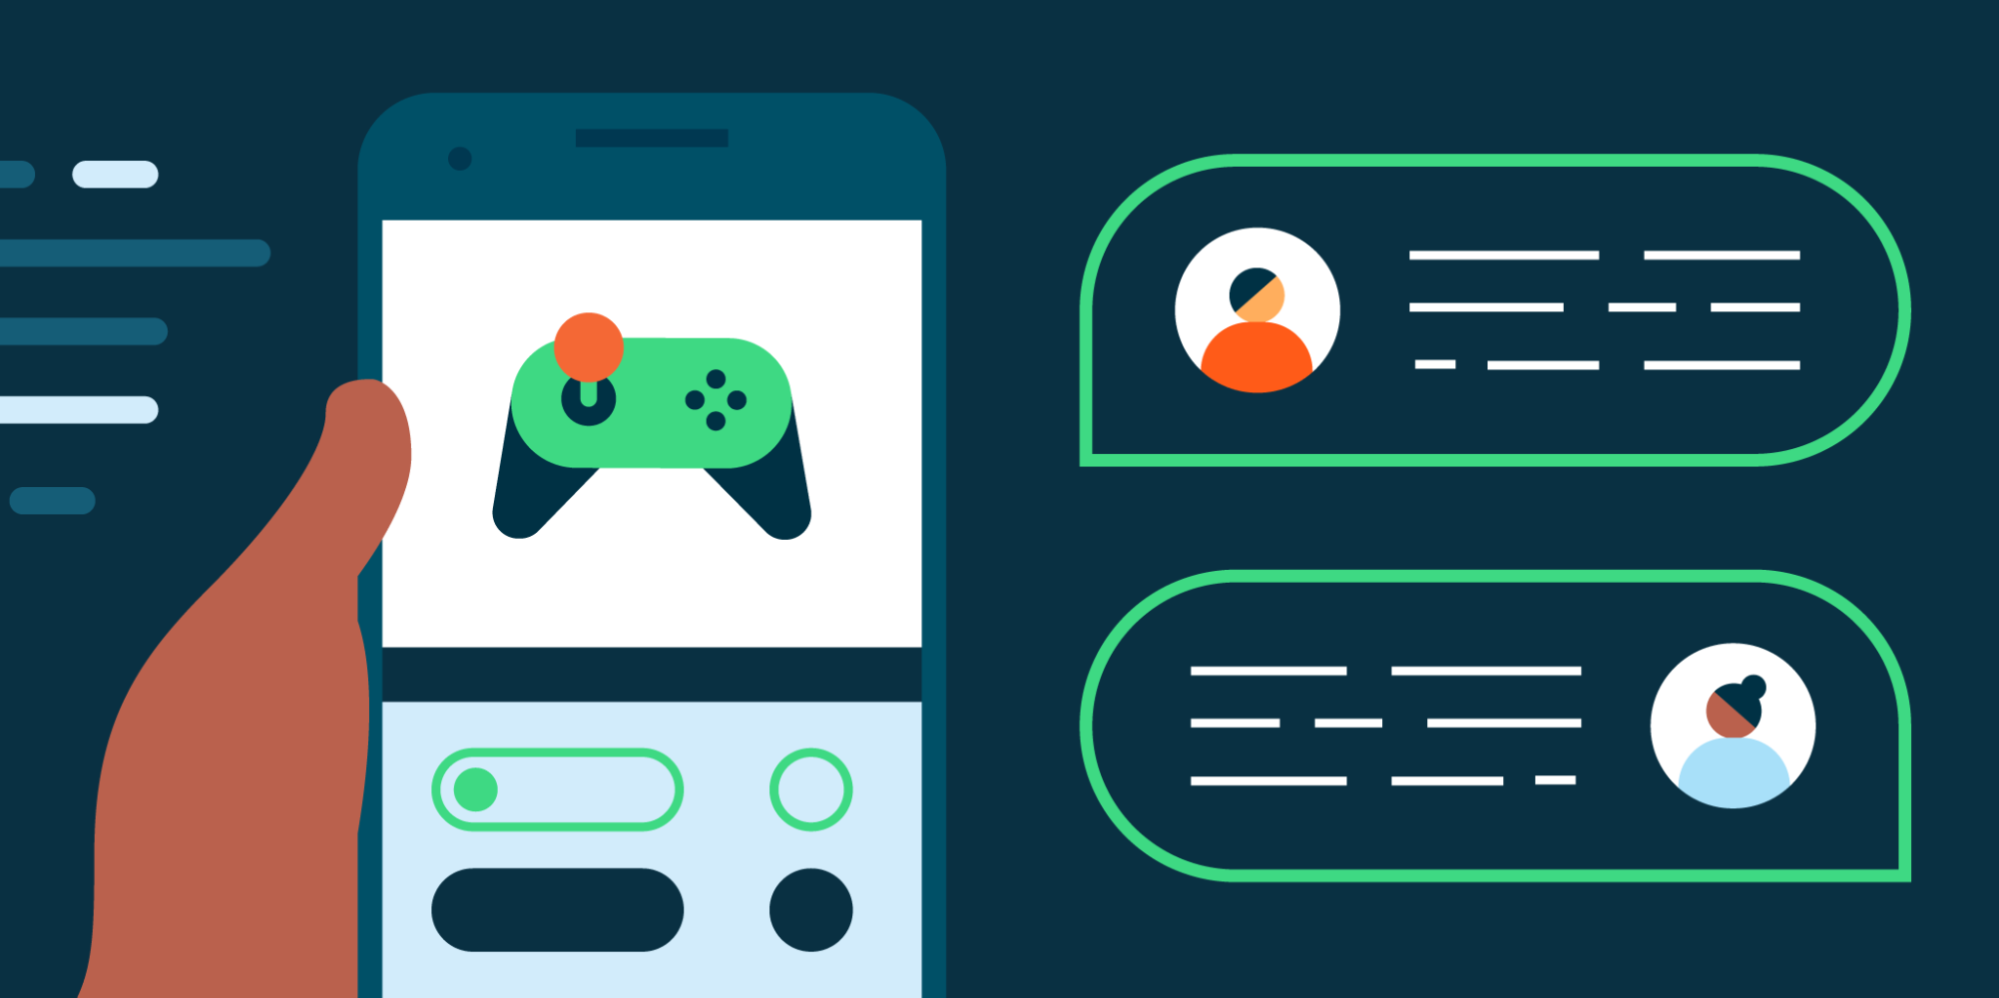 hand holding a phone with game and chat